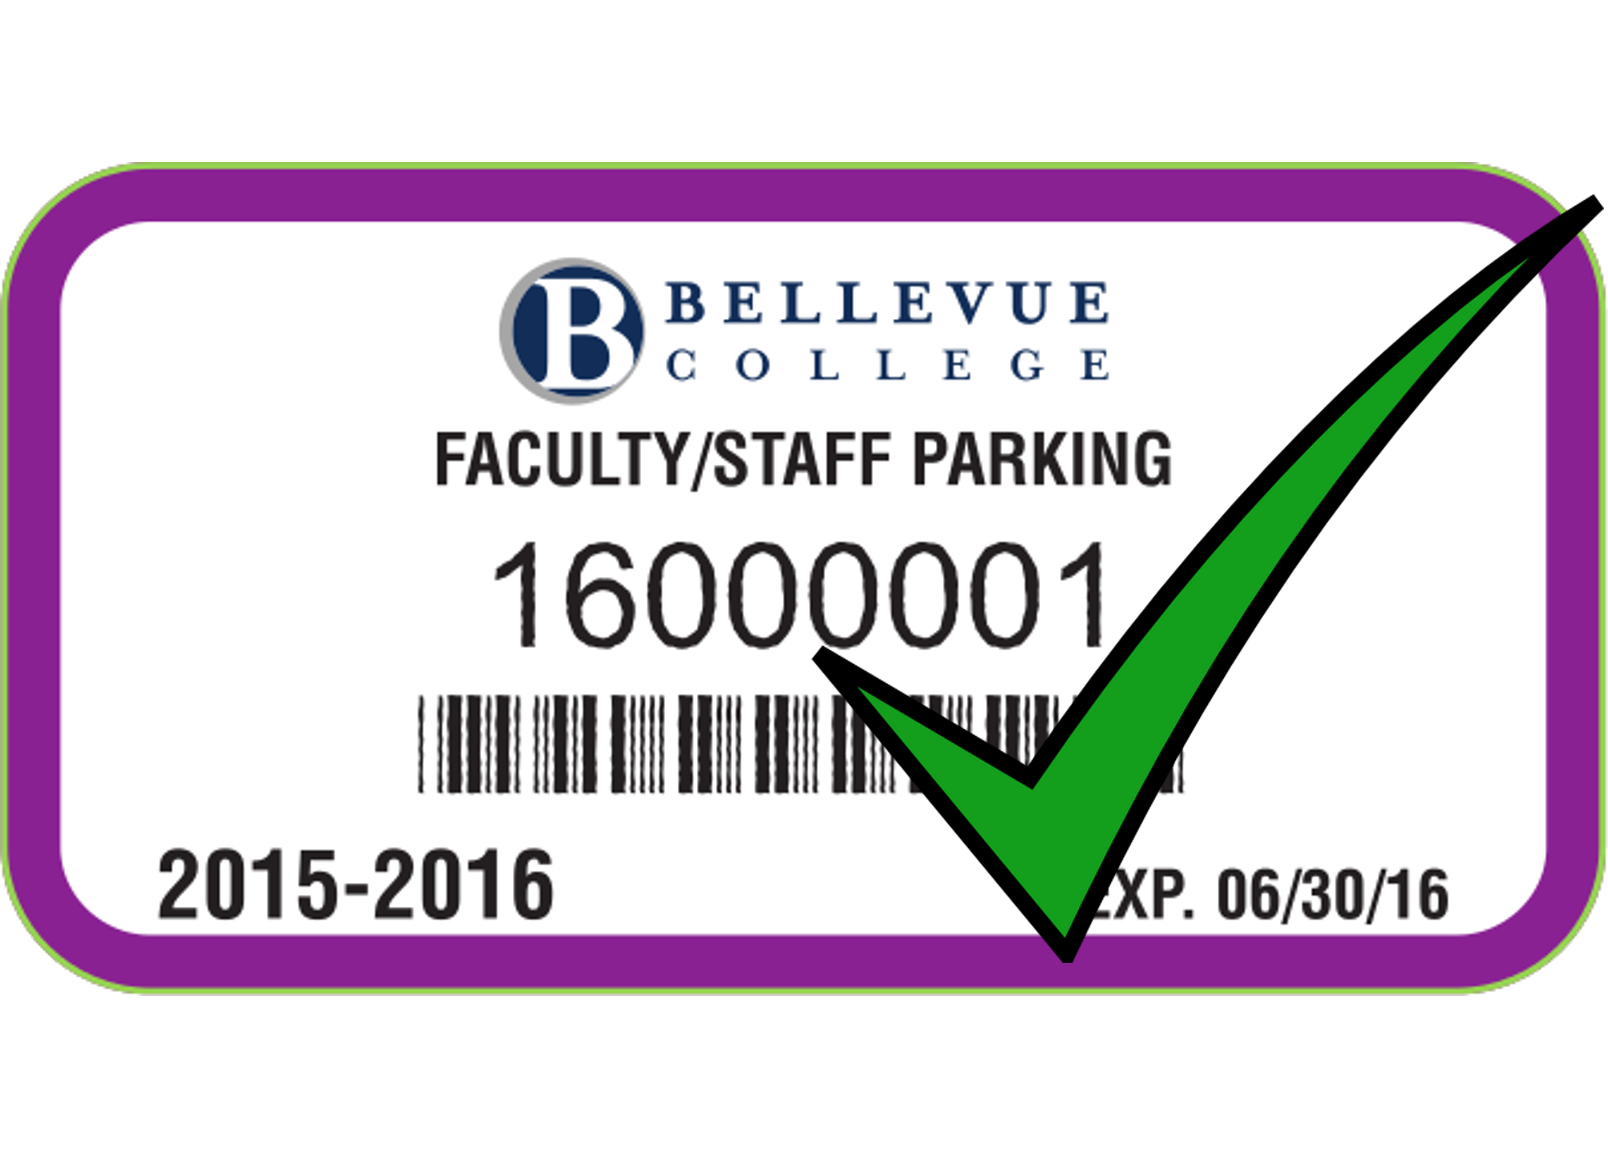 2014-15 Fiscal Year Employee Permit Example